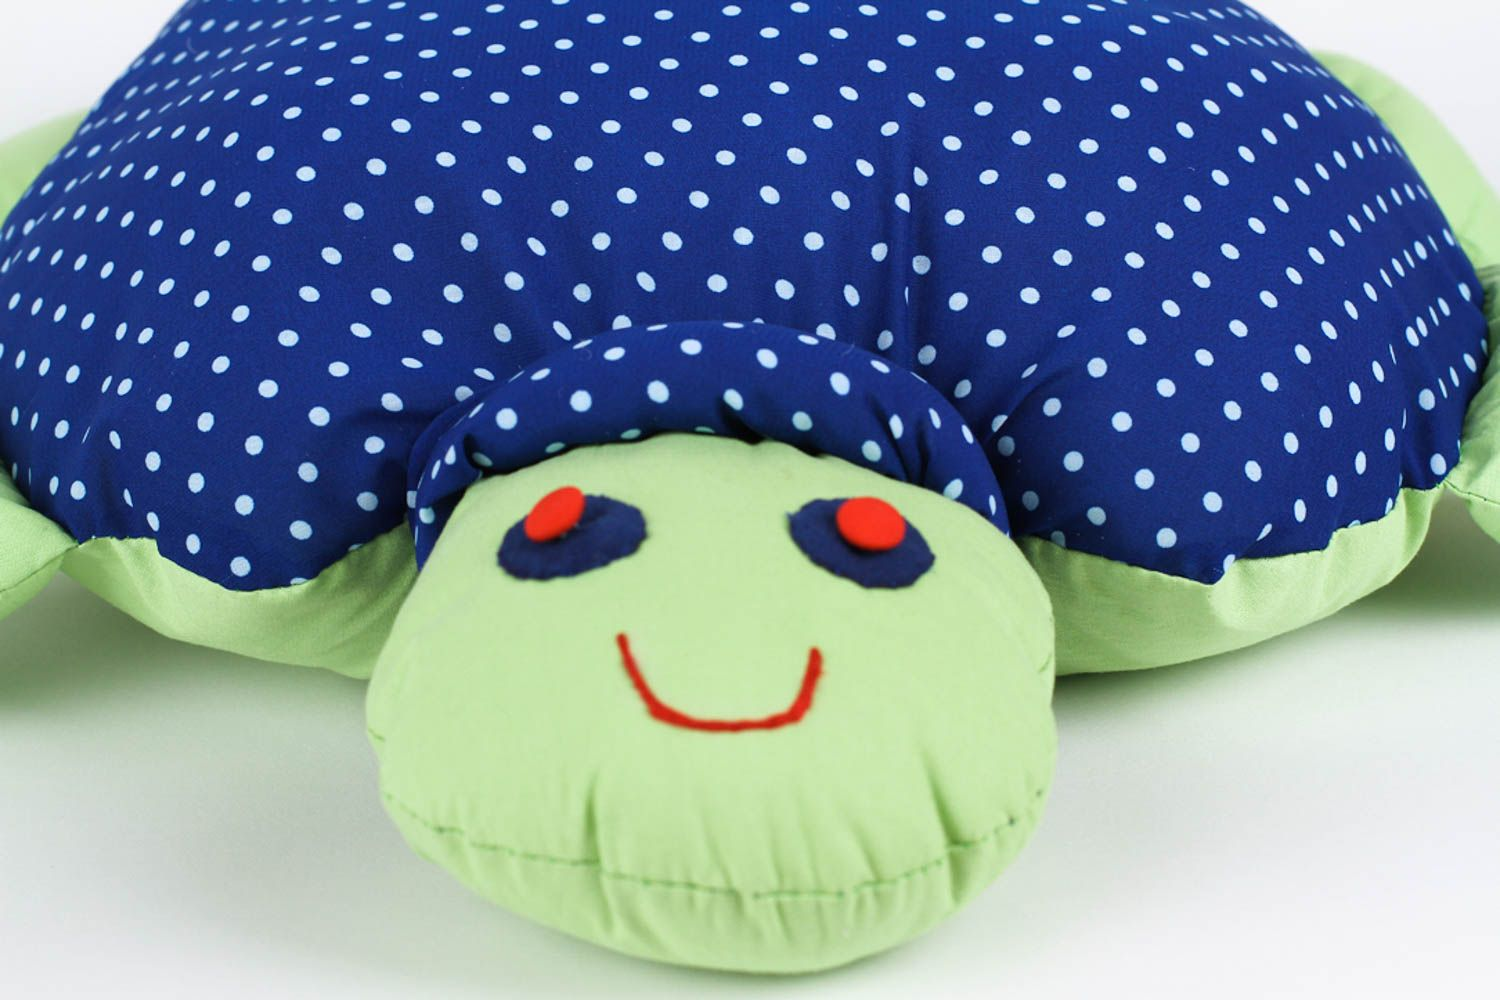 pillow toys Handmade soft toy stuffed pillow pet decorative cushion interior decorating - MADEheart.com